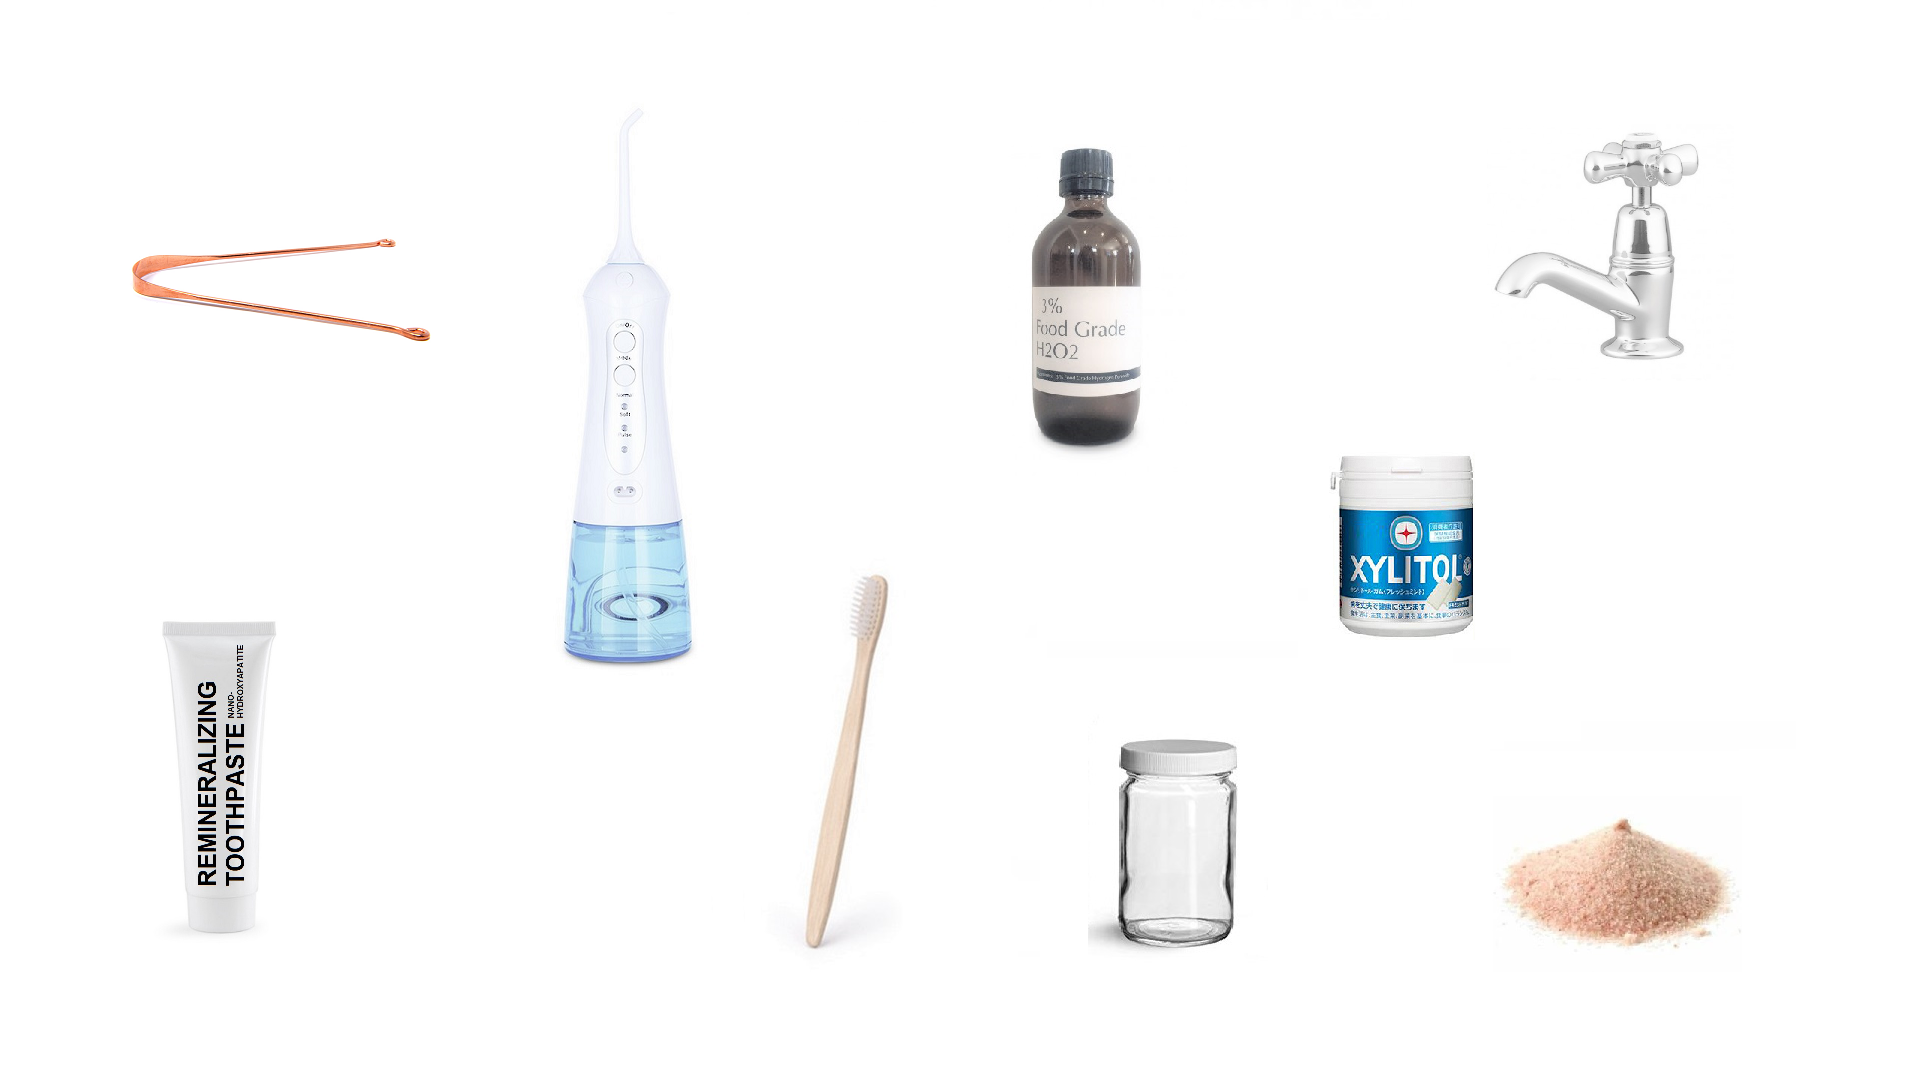 copper tongue scraper, oral irrigator / water flosser, hydrigen peroxide, water, hydroxyapatitie remineralizing toothpaste, soft bristle toothbrush, mixing jar, sea salt, xylitol chewing gum